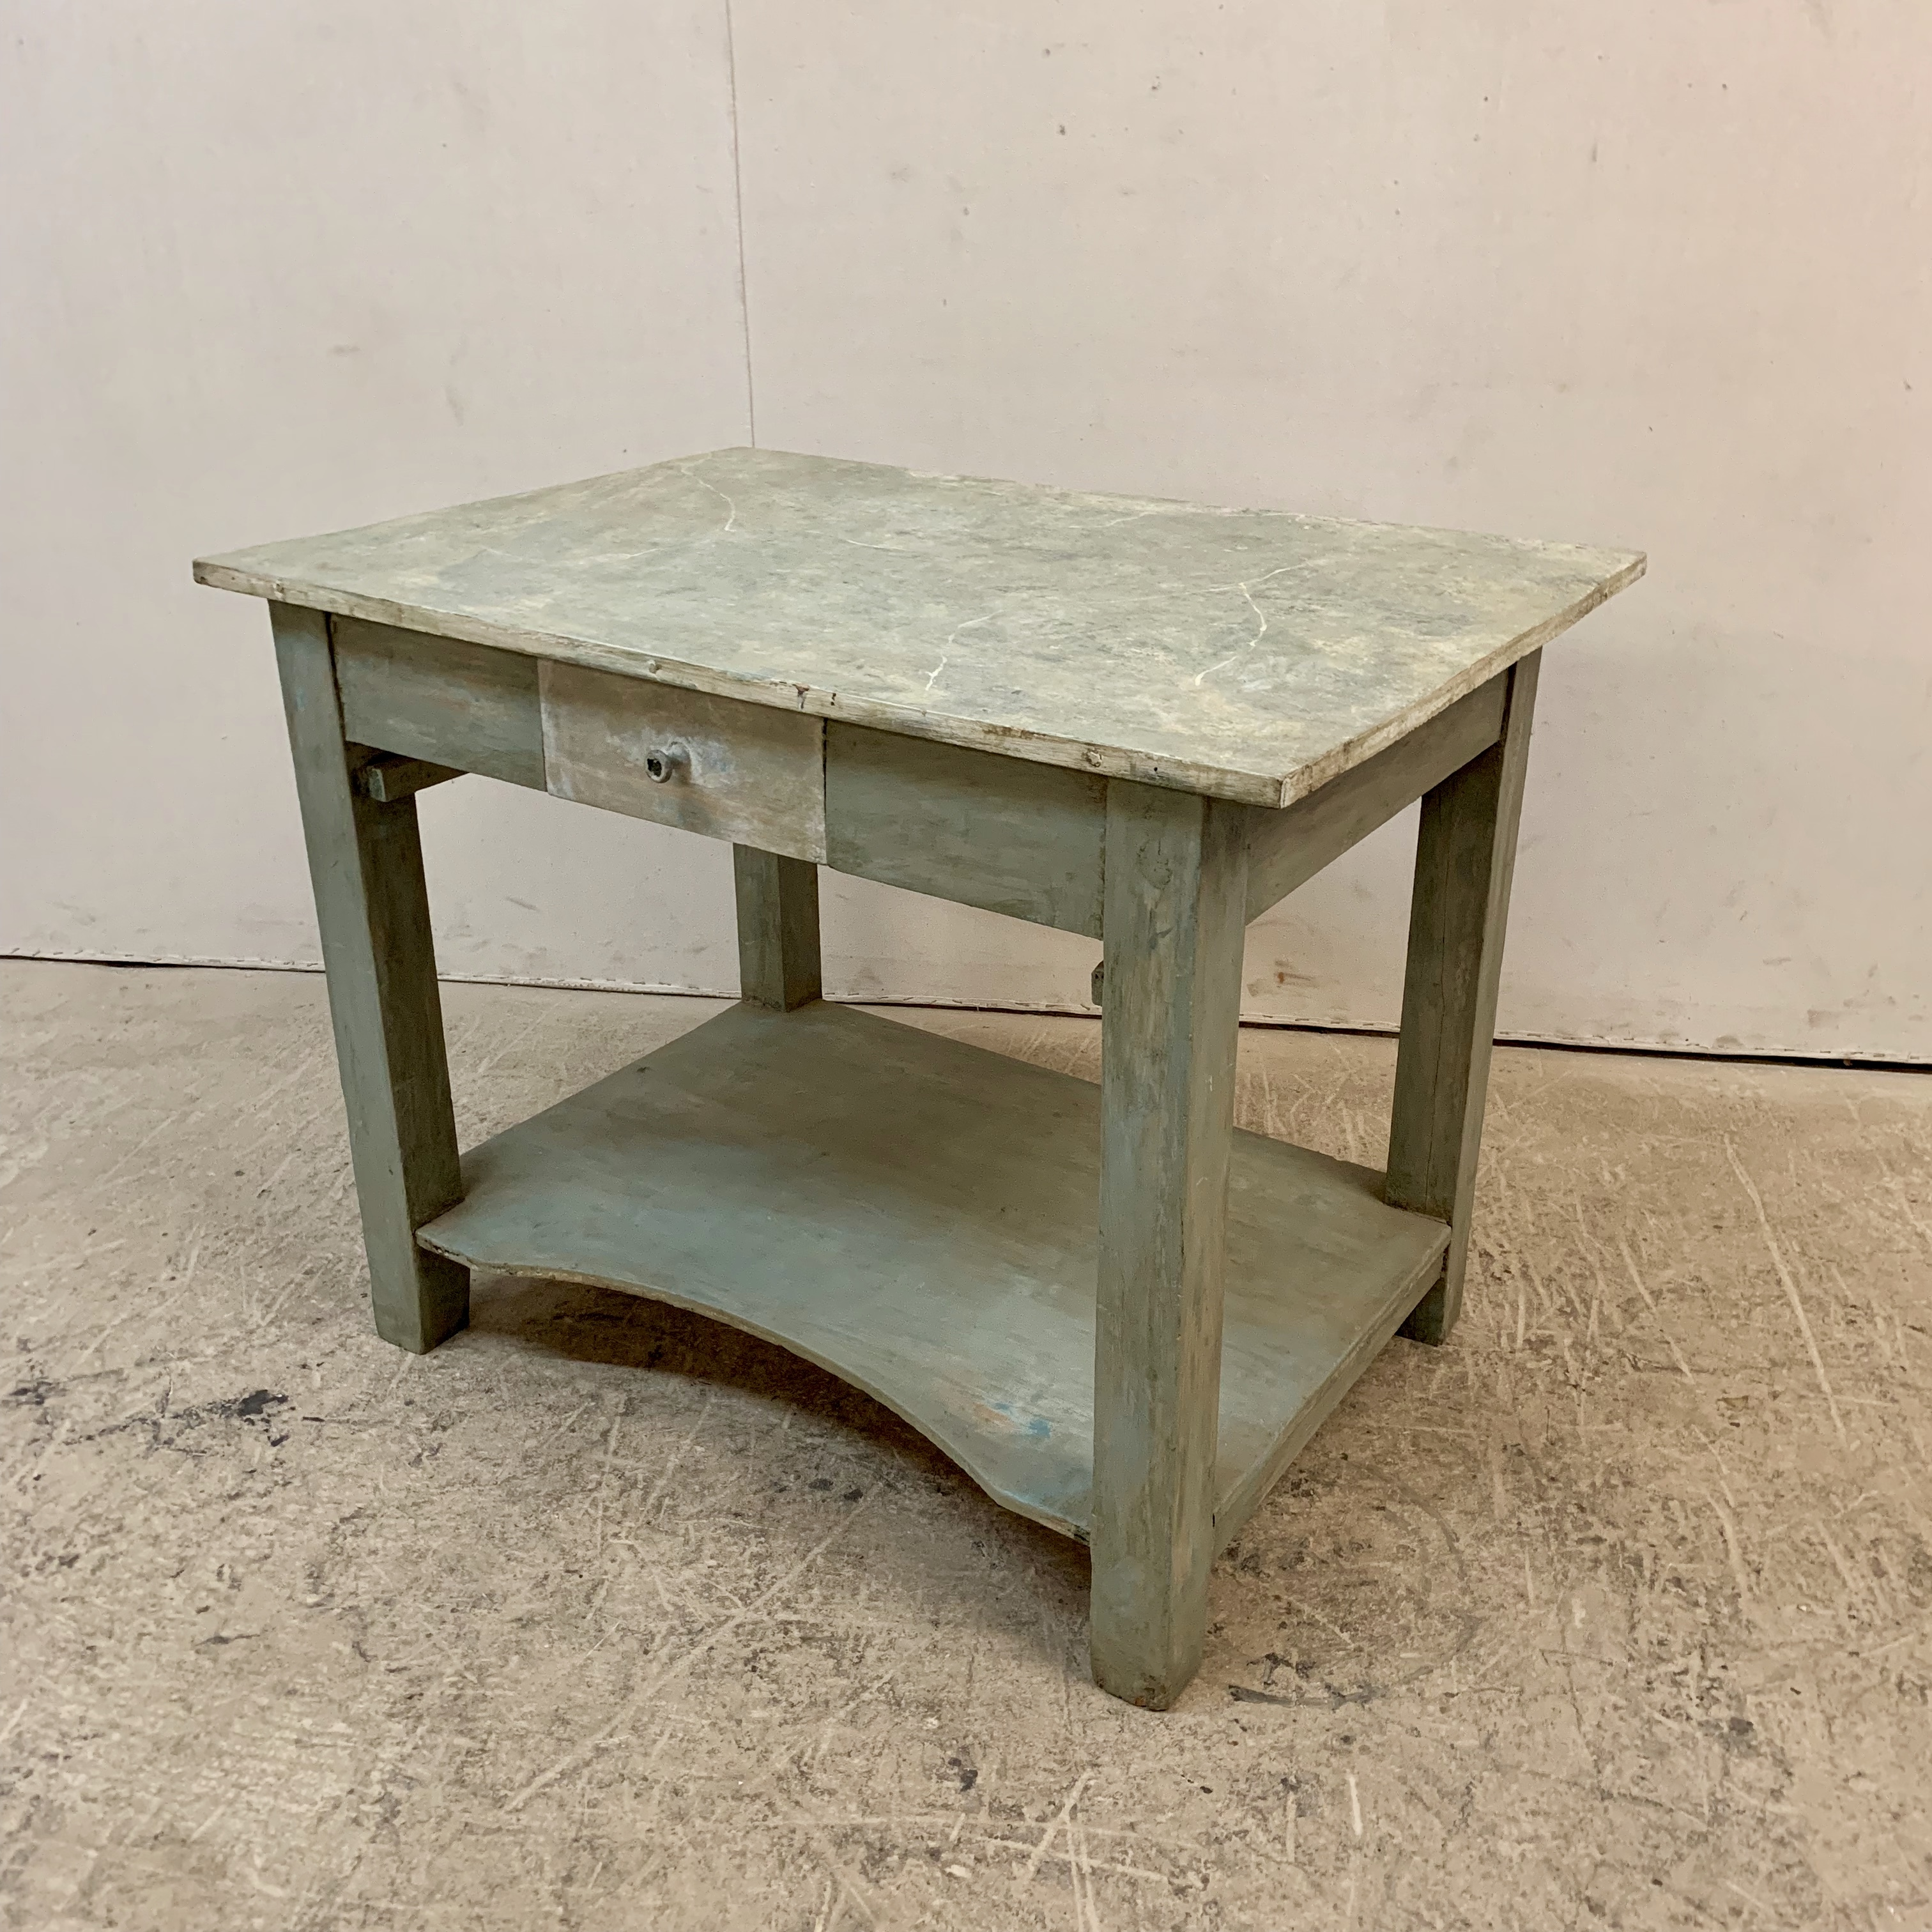 Antique Swedish Painted Table w/Lower Shelf